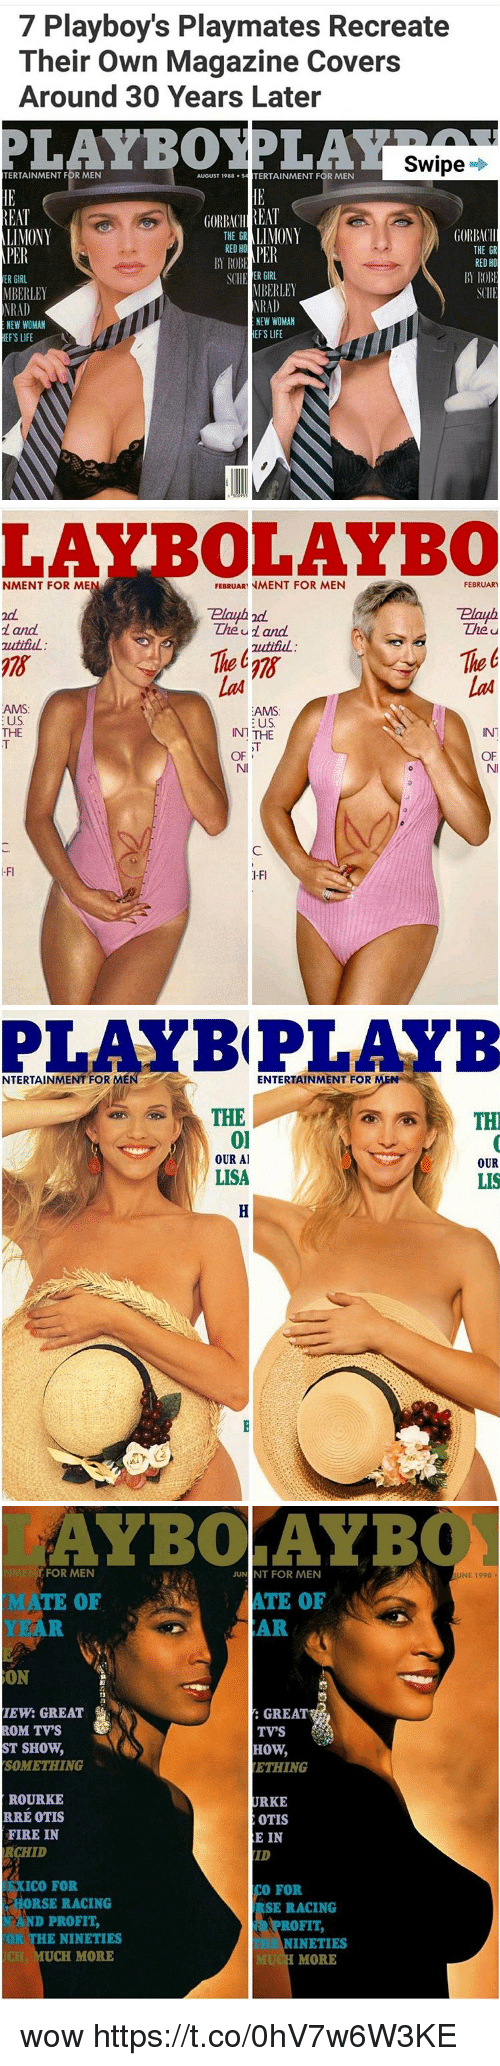 playmates: 7 Playboy's Playmates Recreate  Their own Magazine Covers  Around 30 Years Later  Swipe  TERTAINMENT FbR MEN  AUGUST 1988  TERTAINMENT FOR MEN  REAT  BEAT  LIMONY  LIMONY  GORBMll  THE GR  RED H  THE GR  PER  PER  ROB  RED HO  B RO  SCHE ER GIRL  ER GIRL  MBERLEY  MBERLEY  NRAD  NRAD  NEW WOMAN  NEW WOMAN  EFS LIFE  EFS LIFE   LAYBOLAYBO  NMENT FOR ME  FEBRUARNMENT FOR MEN  FEBRUARY  Plauph 2d.  The u and  and  The u  zutituL:  The E  AMS  AIMS  US  US  IN1  THE  IN THE  OF  OF   PLAY BPLAYB  NTERTAINMENT FOR ME  ENTERTAINMENT FOR  THE  TH  01  OUR Al  OUR  LISA  LIS   AYBOLAYB  FOR MEN  JUN NT FOR MEN  ATE OF  MATE OF  AR  IEW: GREAT  GREAT  ROM TVS  TV'S  ST SHOW,  How,  SOMETHING  ETHING  URKE  ROURKE  RRE OTIS  OTIS  FIRE IN  RE IN  ID  ICO FOR  CO FOR  ORSE RACING  SE RACING  D PROFIT,  ROFIT,  NINETIES  NINETIES  UCH MORE  MORE  NE 1990. wow https://t.co/0hV7w6W3KE